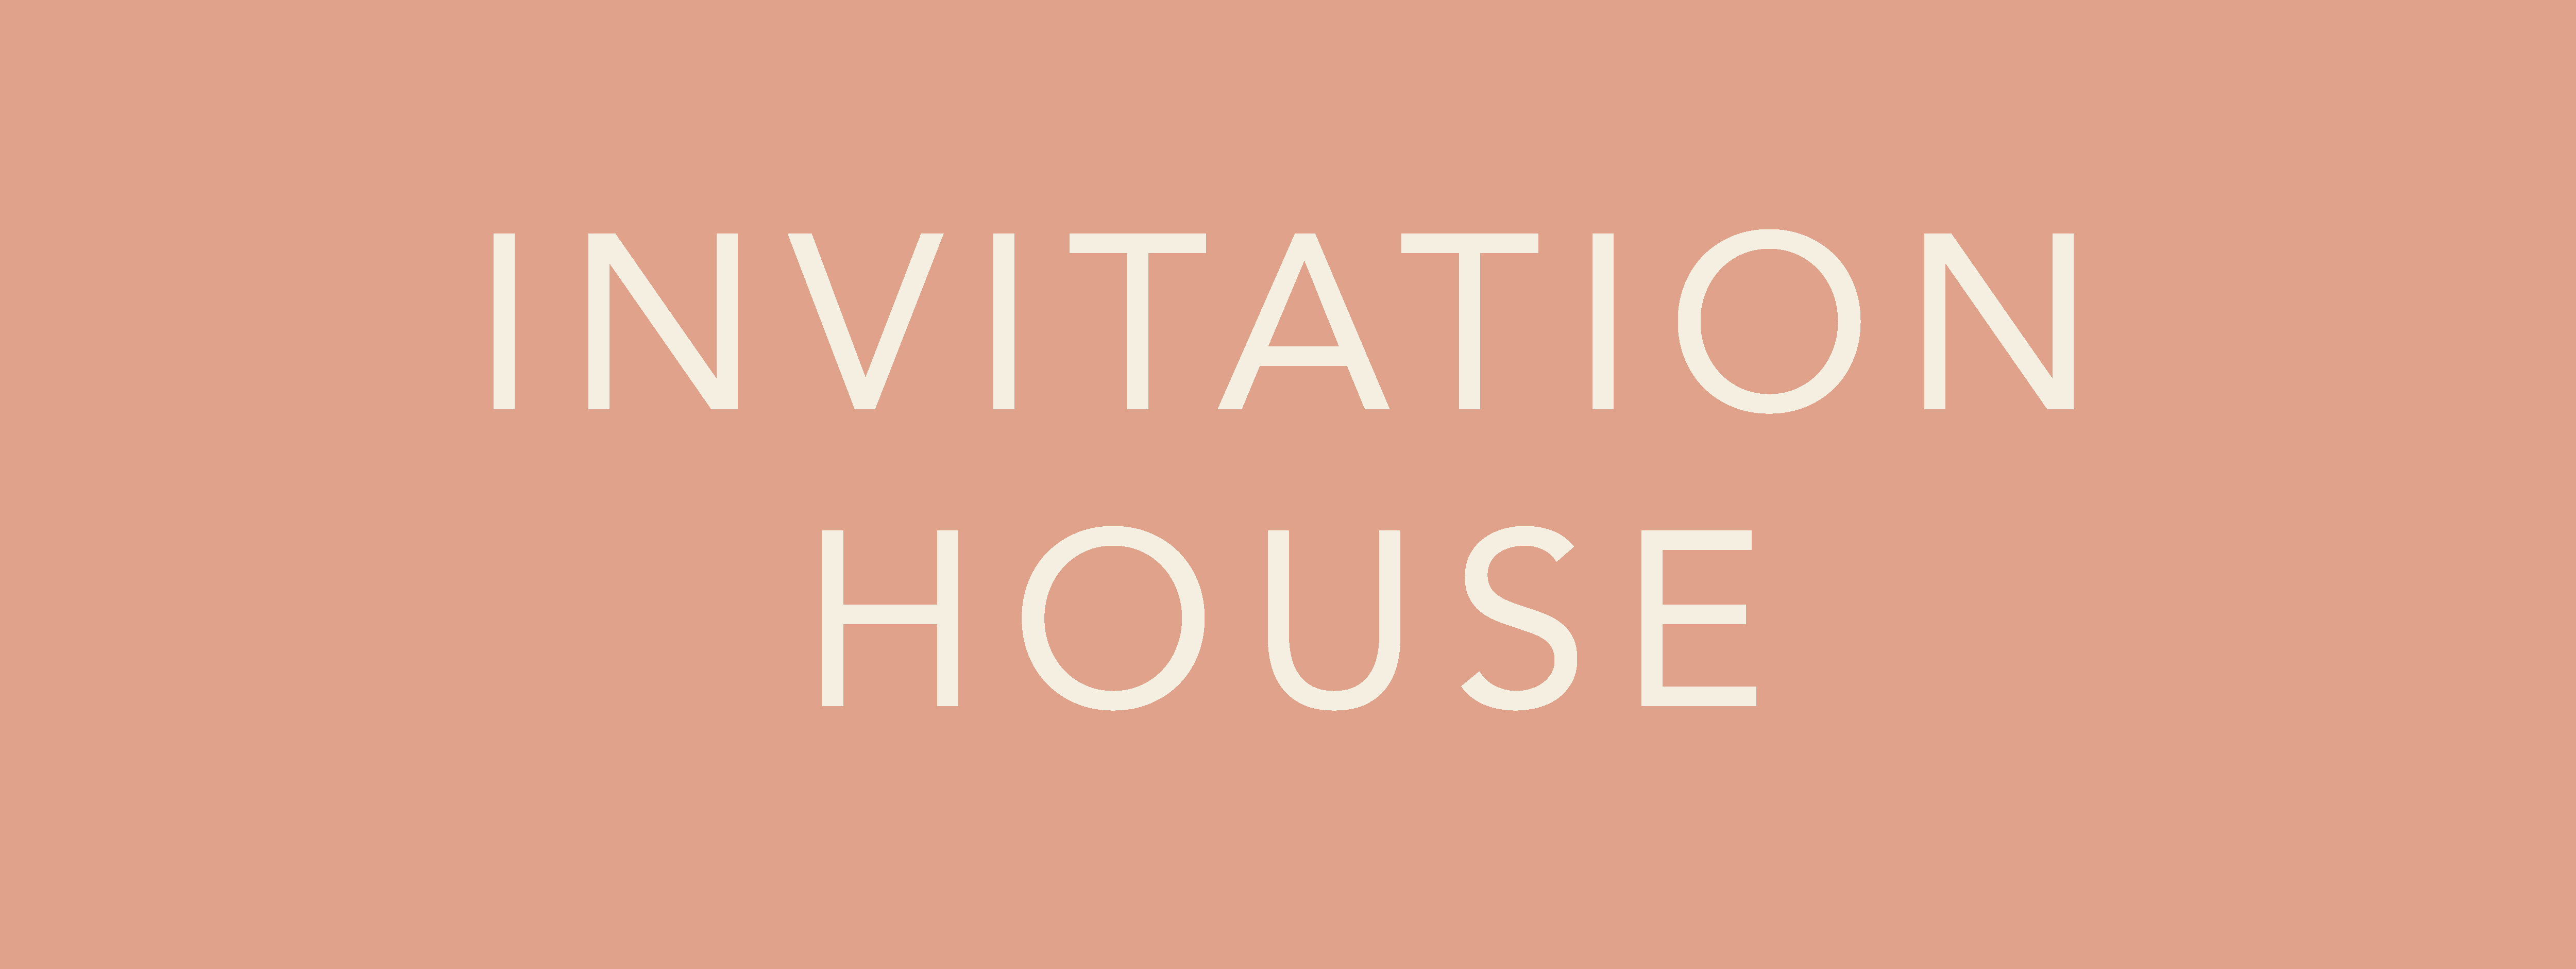 Invitation House PH